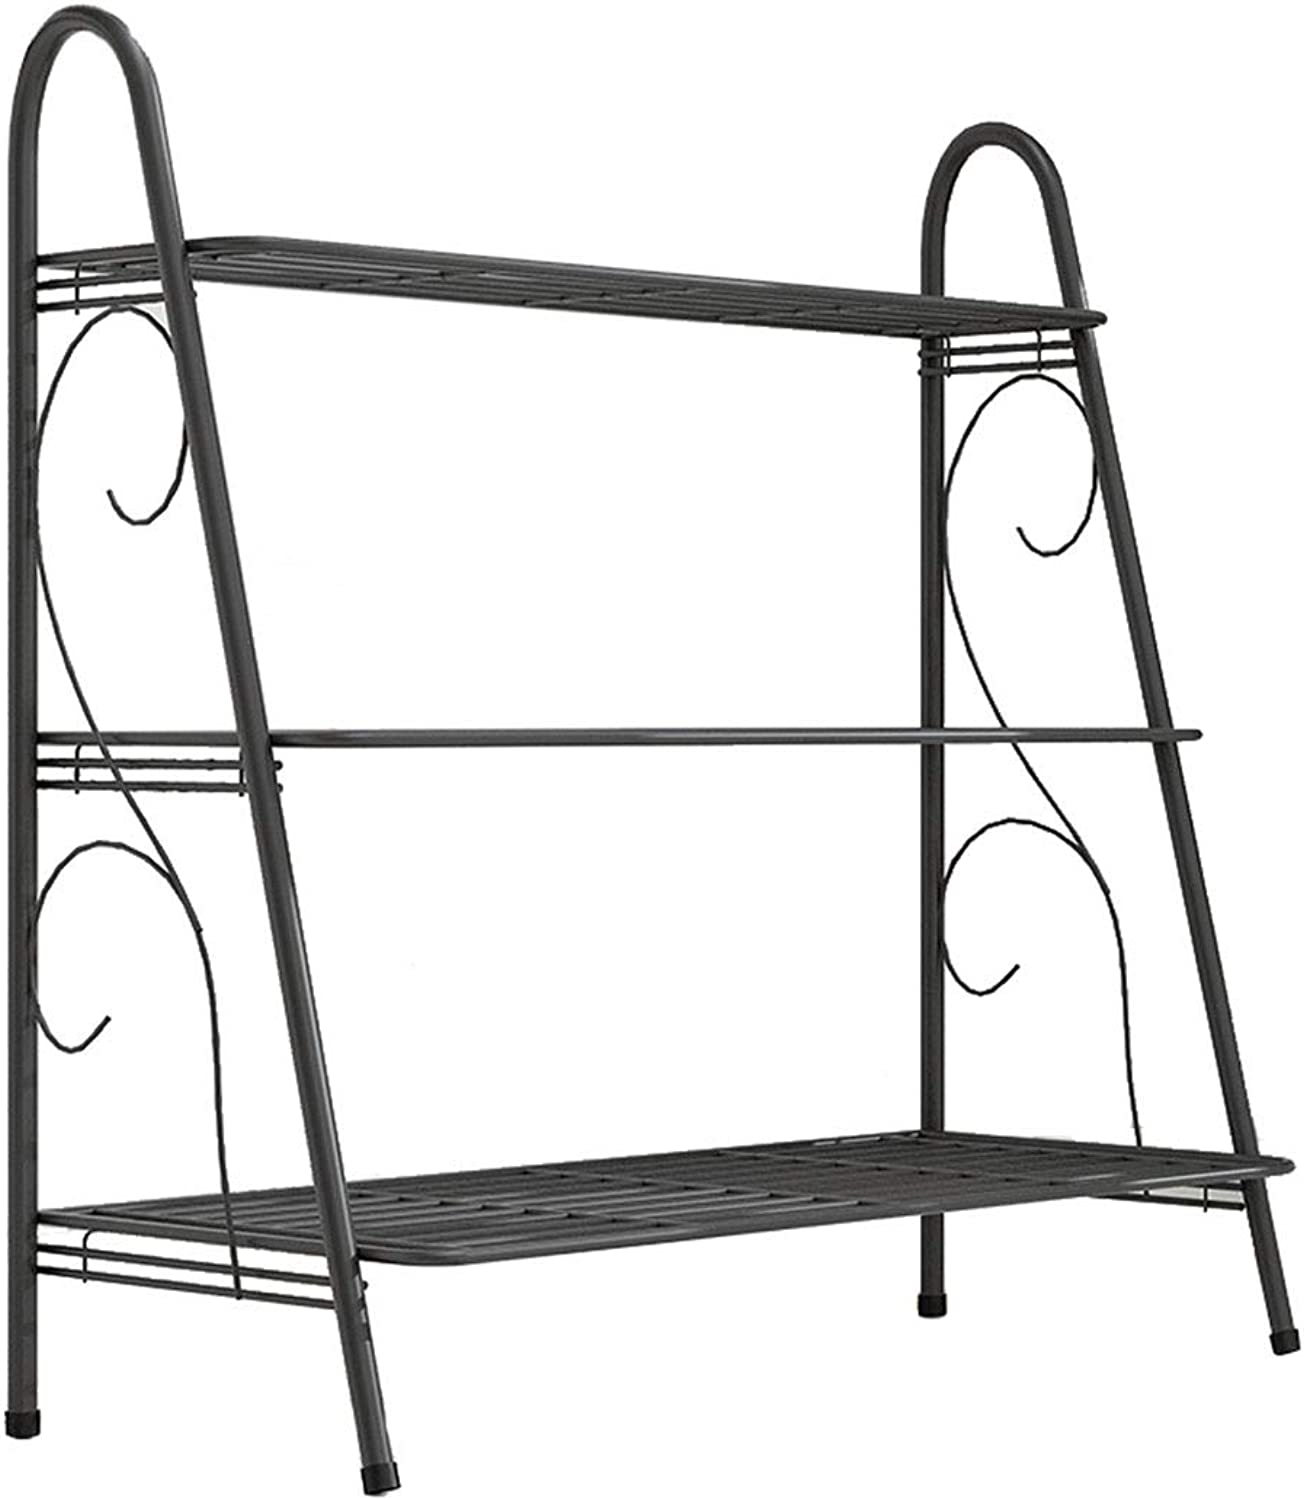 MBD Multi-Layer Wrought Iron Flower Staging Plant Stand Succulent Display Shelf for Garden 24.8  12.2  28.3in Black